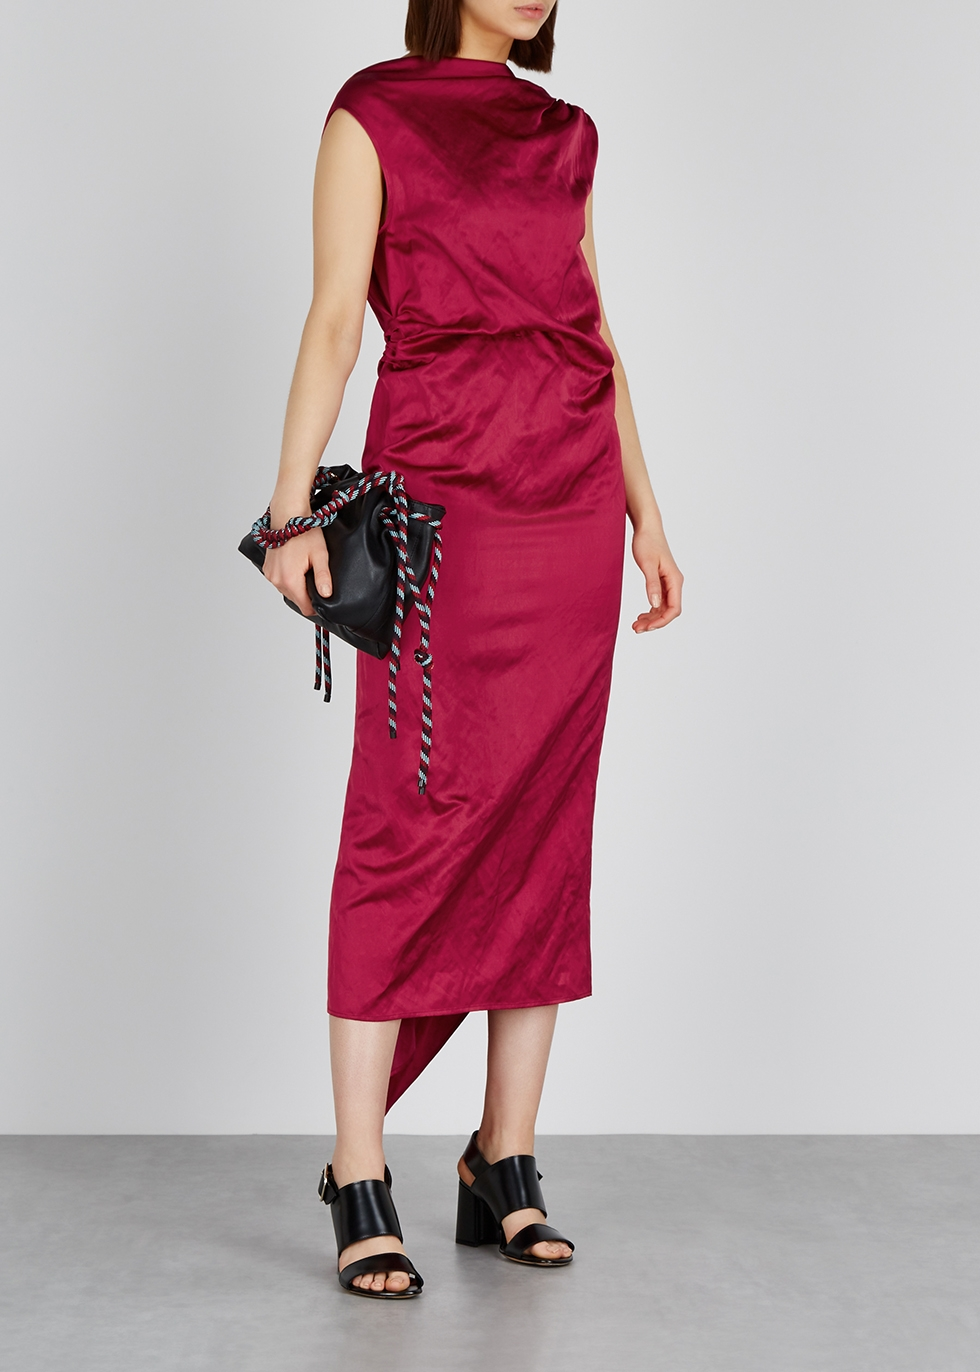 Diala red satin midi dress - Dries Van Noten